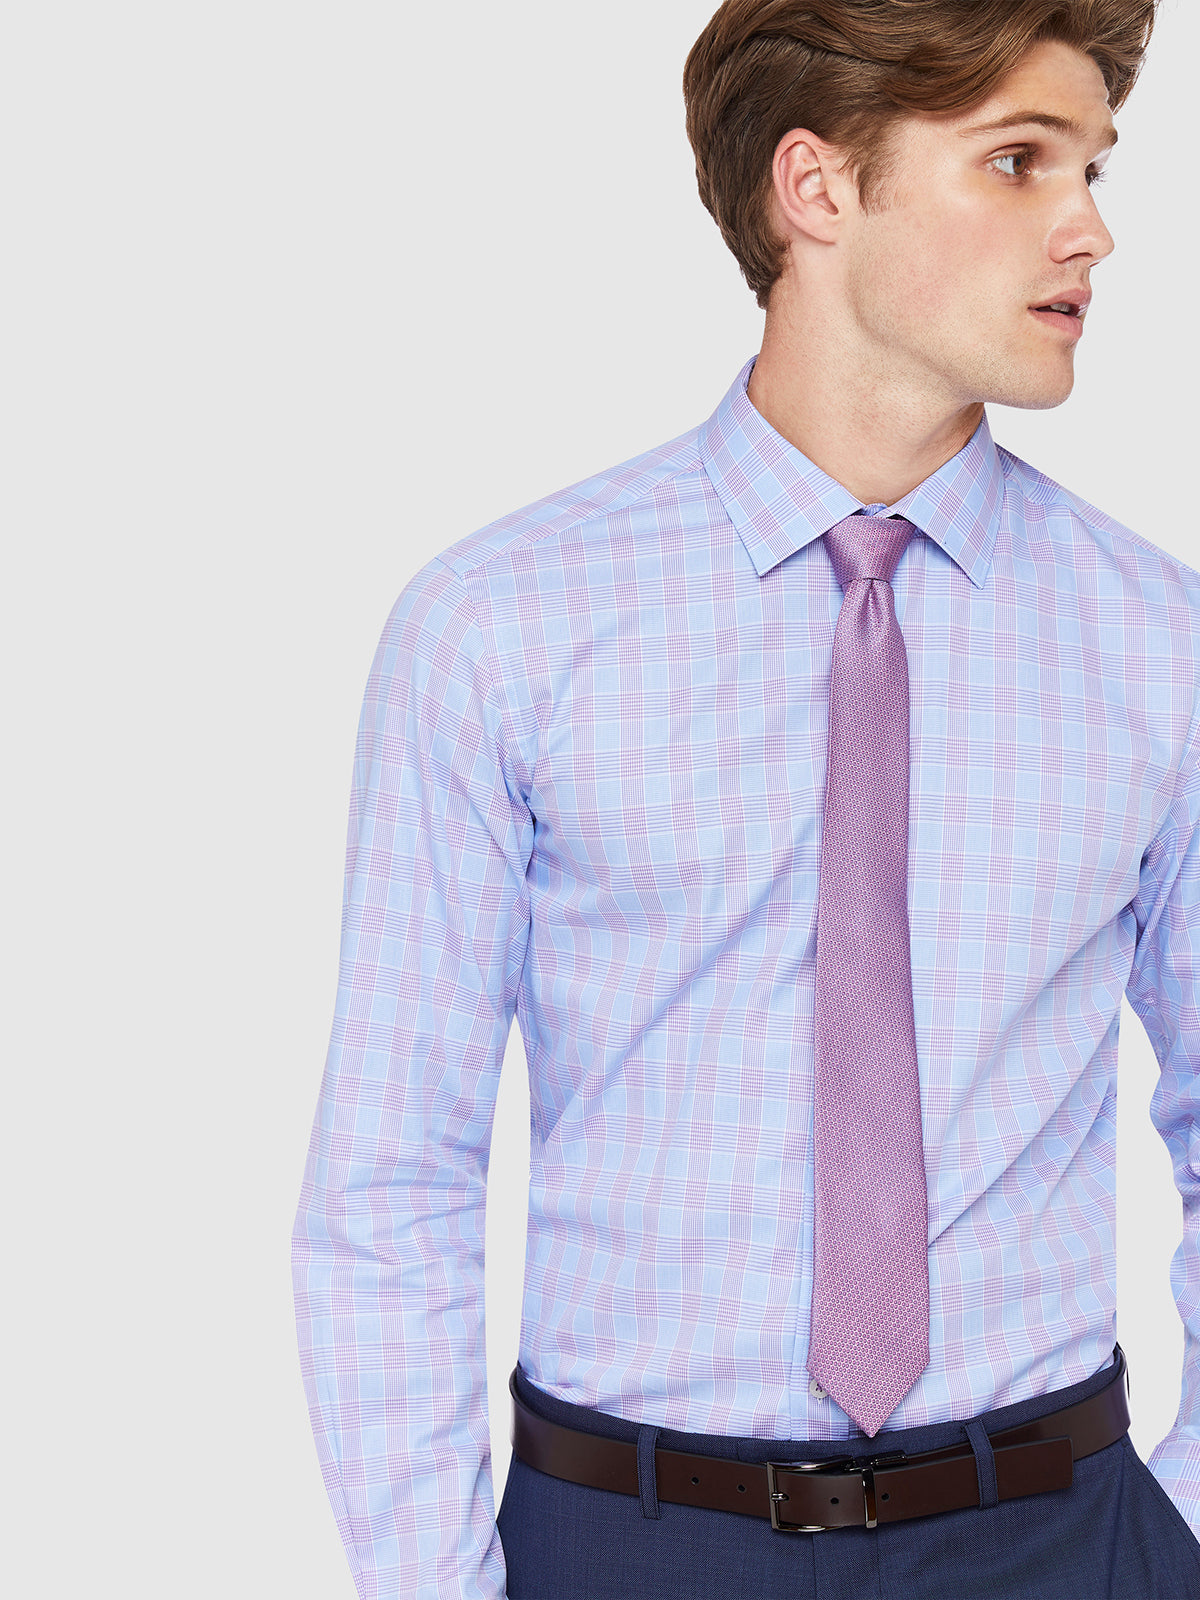 BECKTON CHECKED SHIRT PURPLE/SKY